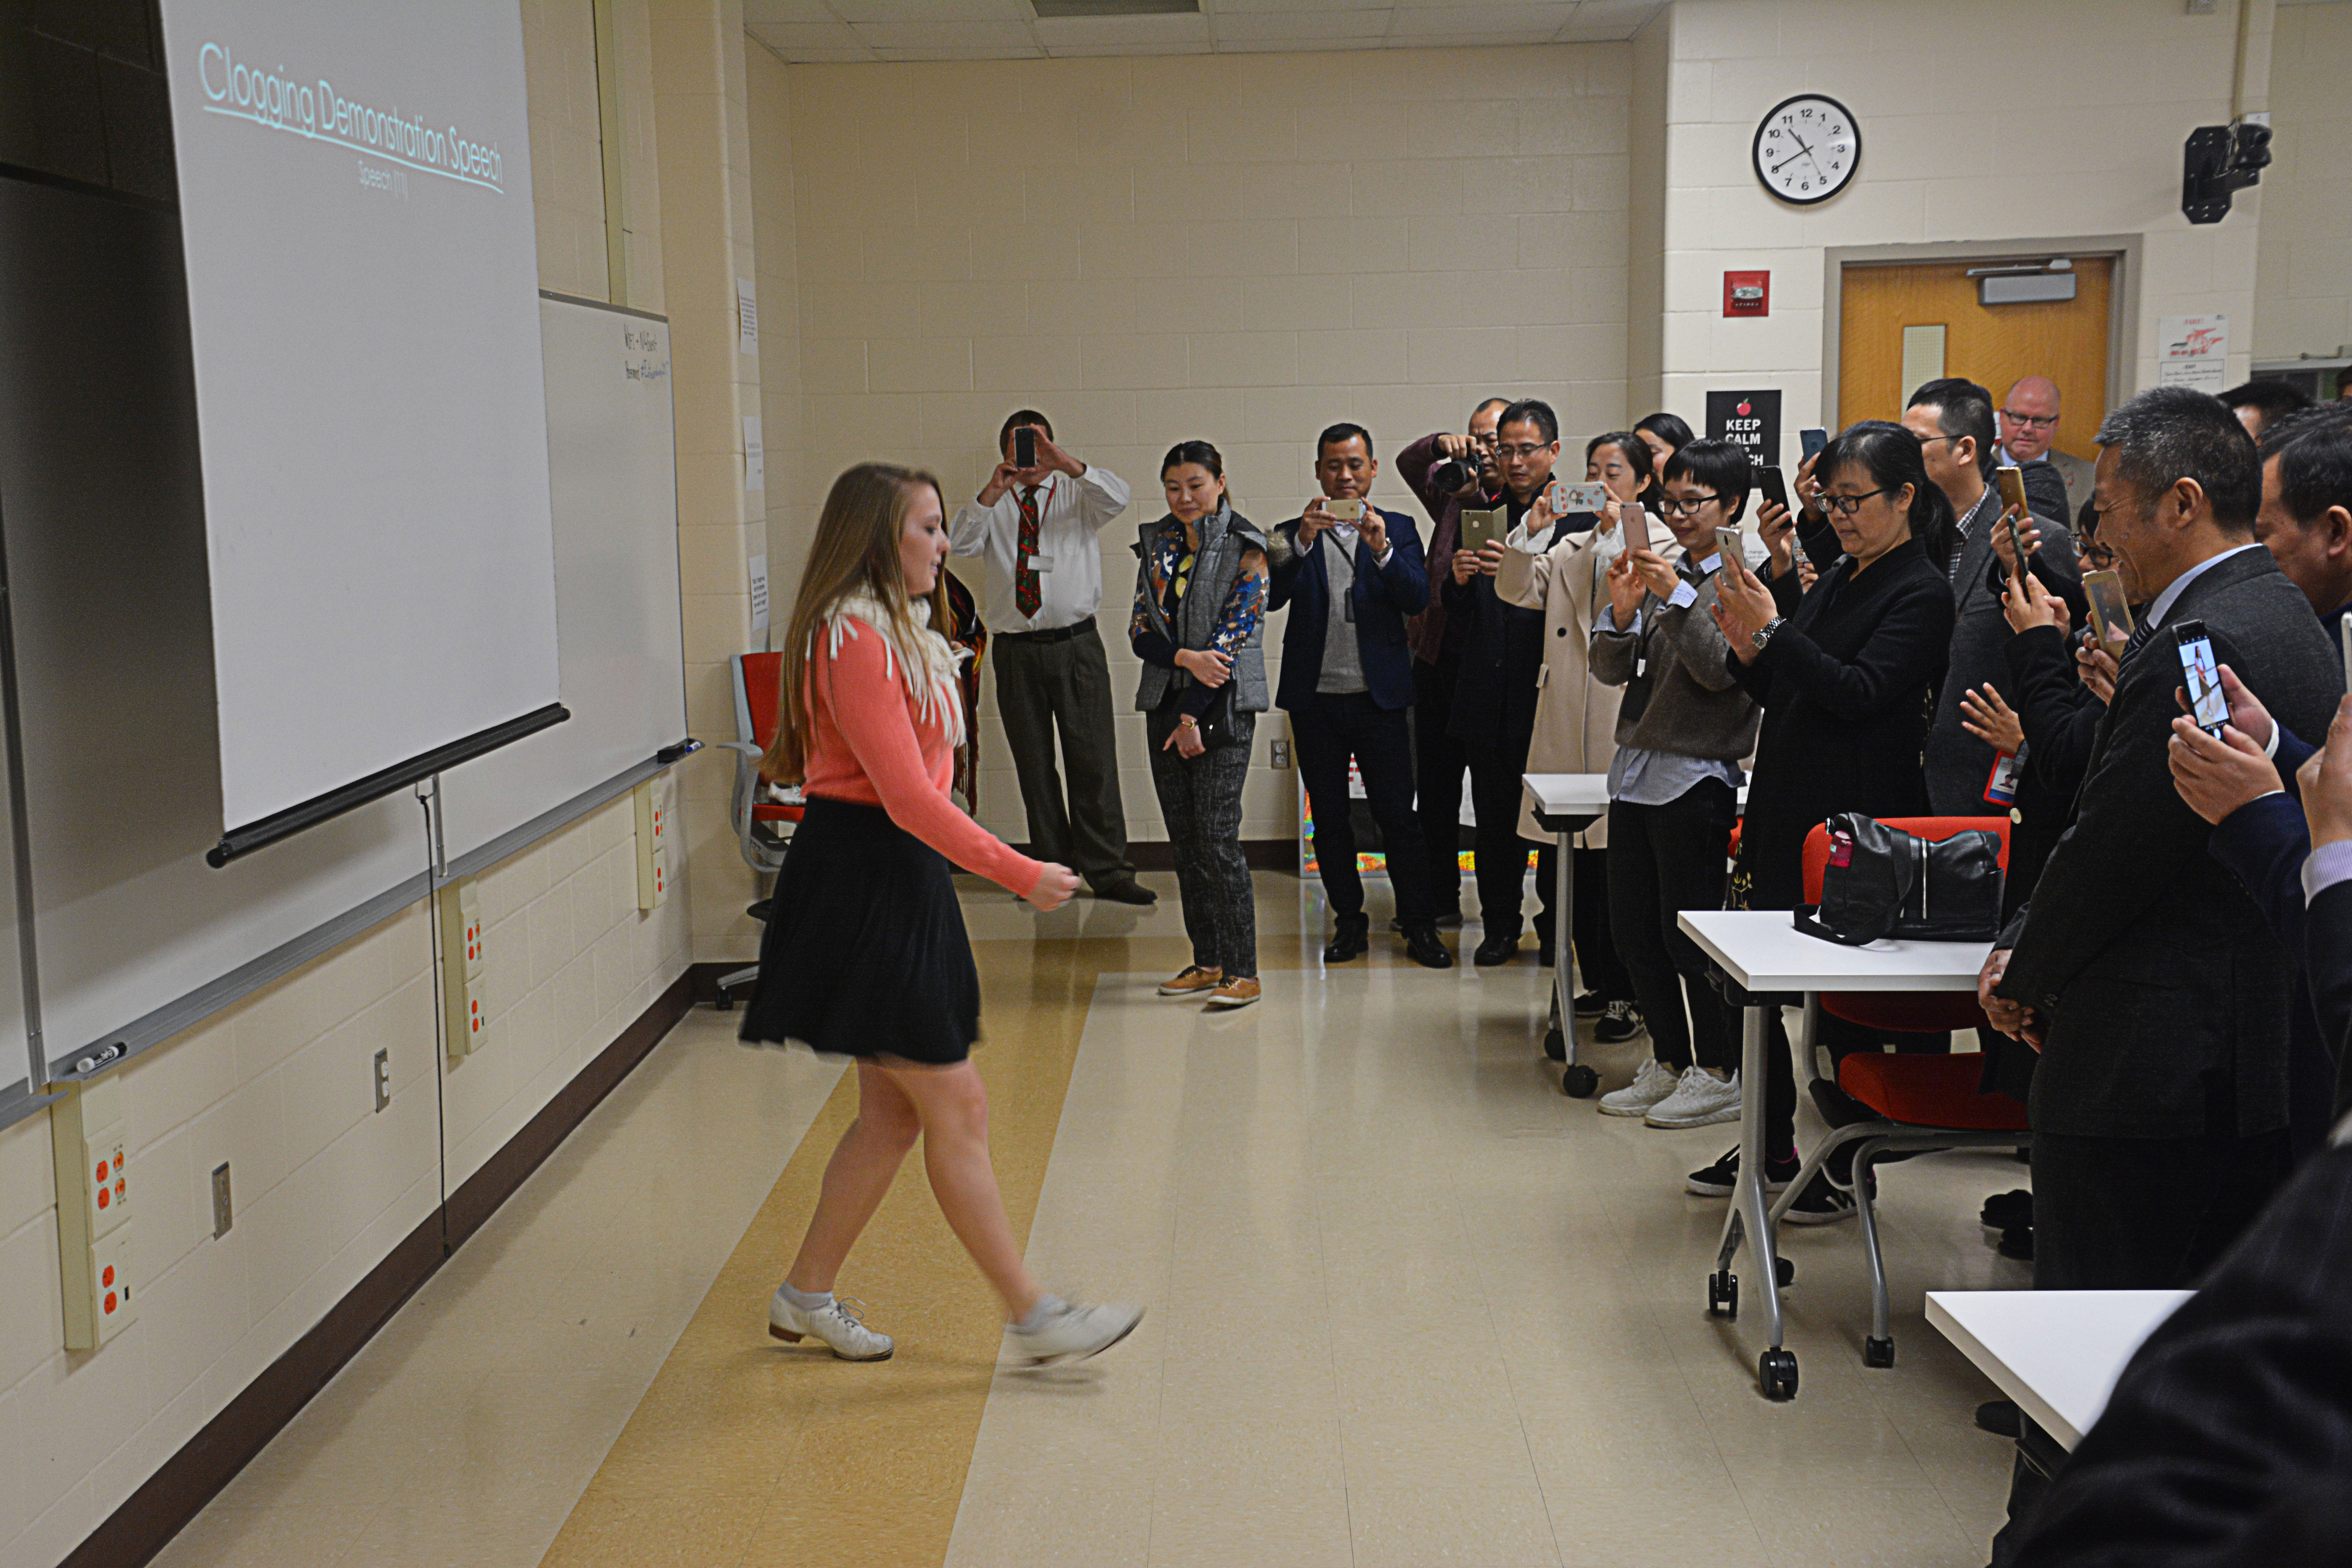 NPHS Senior Ellie Roudebush teaching administrators from China how to clog dance.